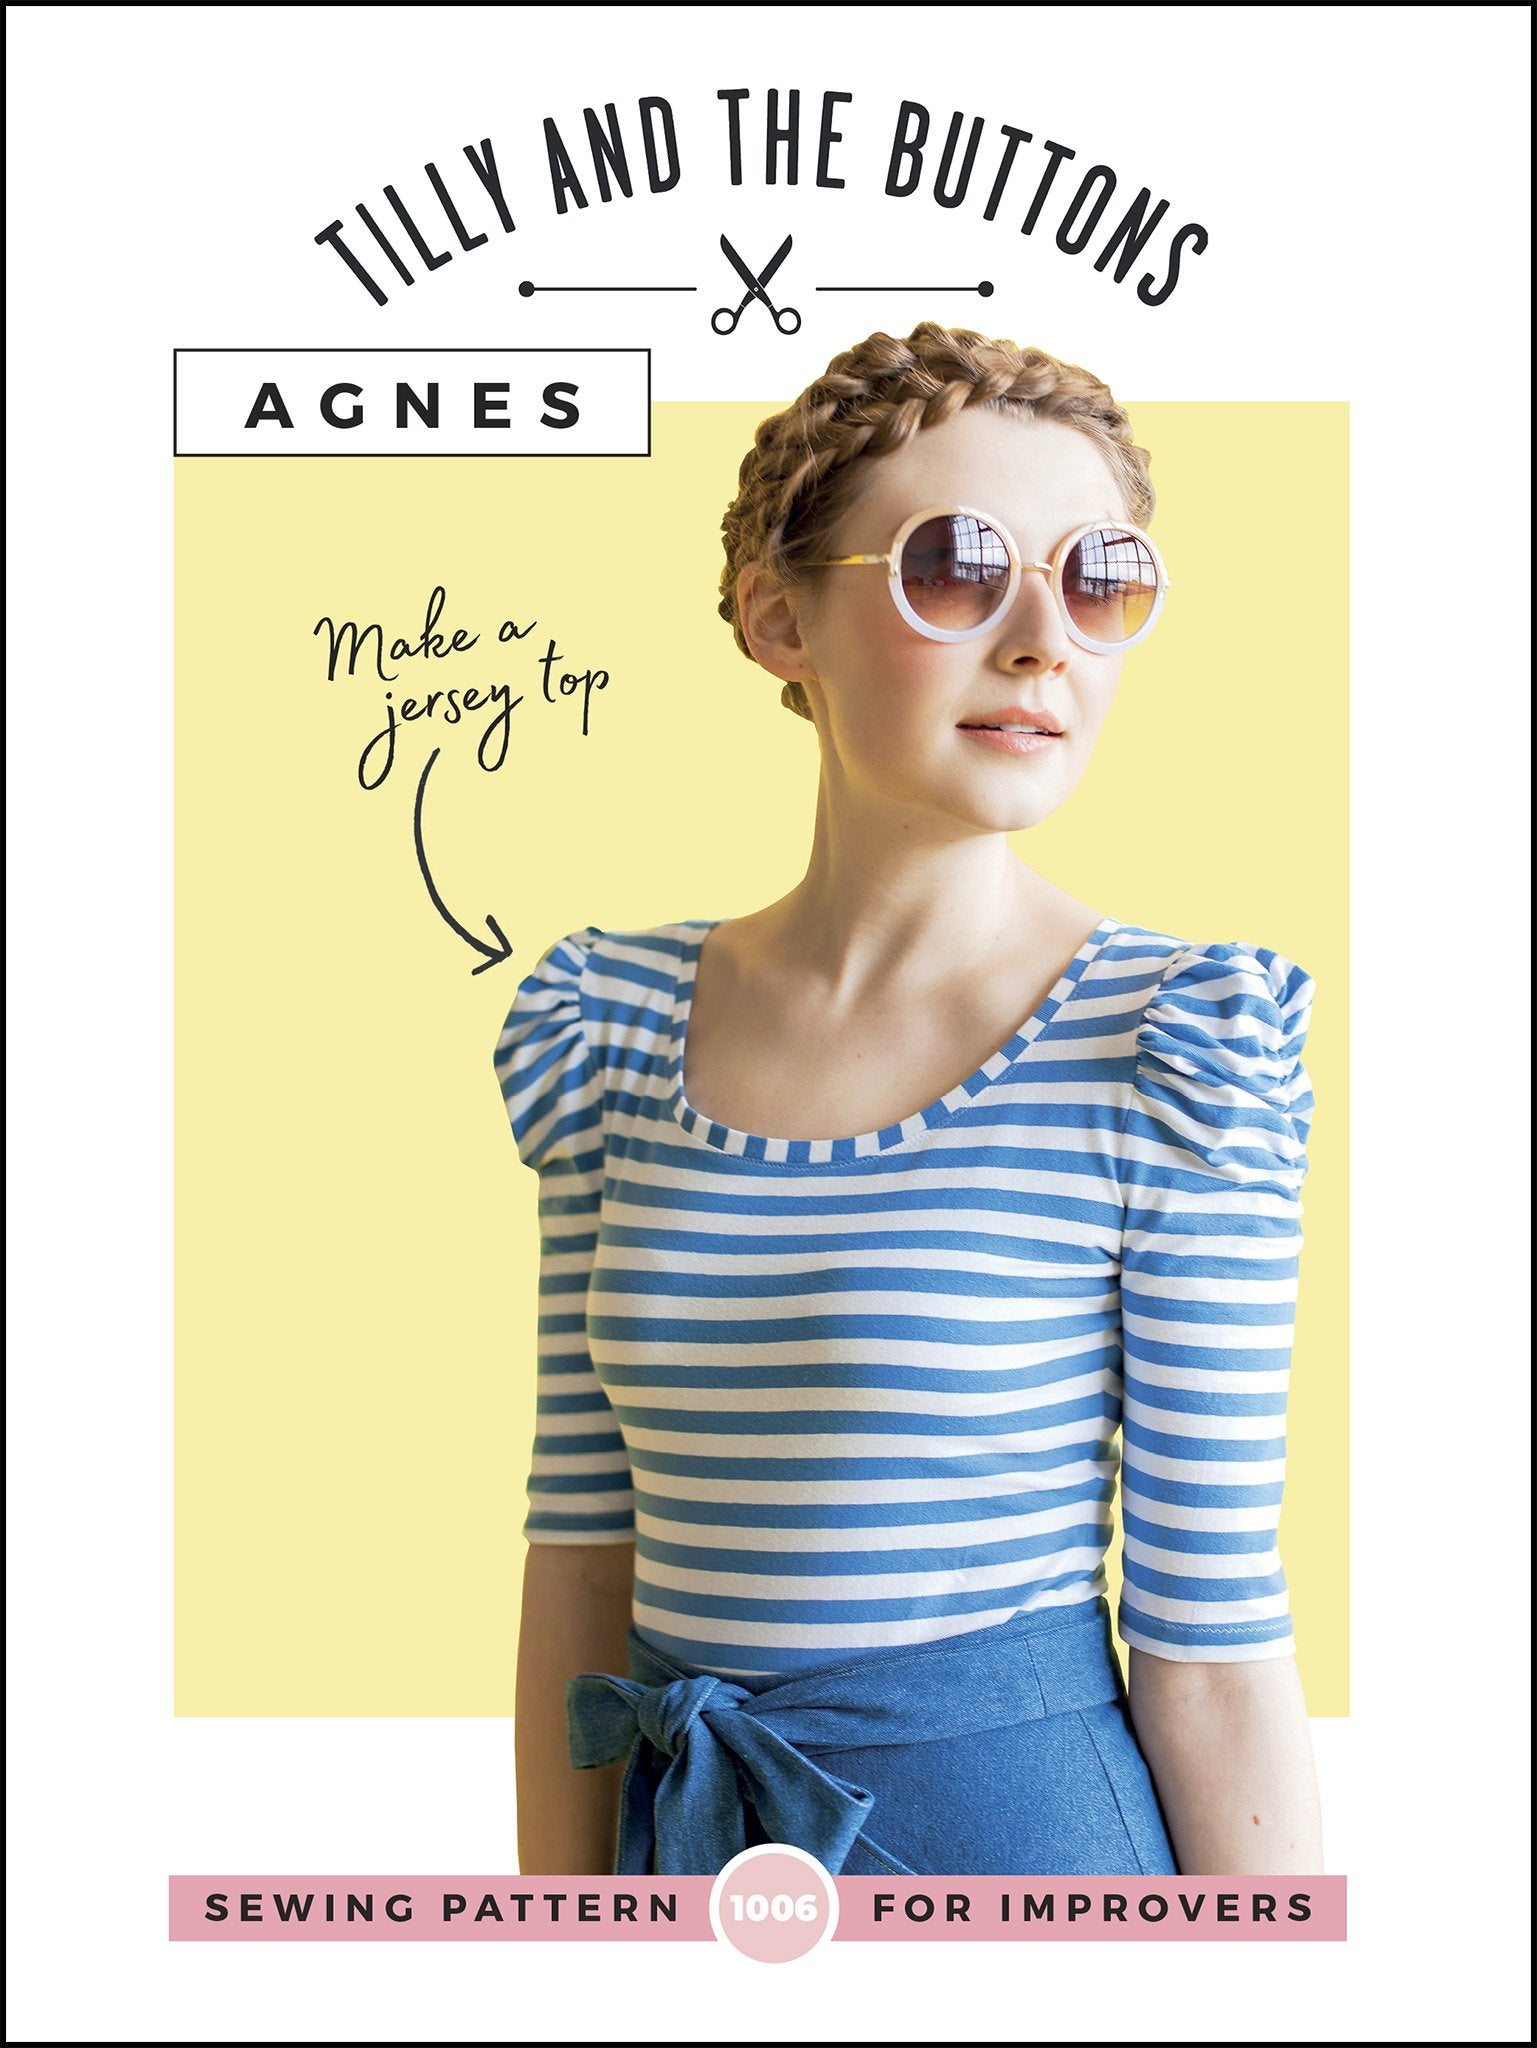 TILLY AND THE BUTTONS AGNES JERSEY TOP PATTERN